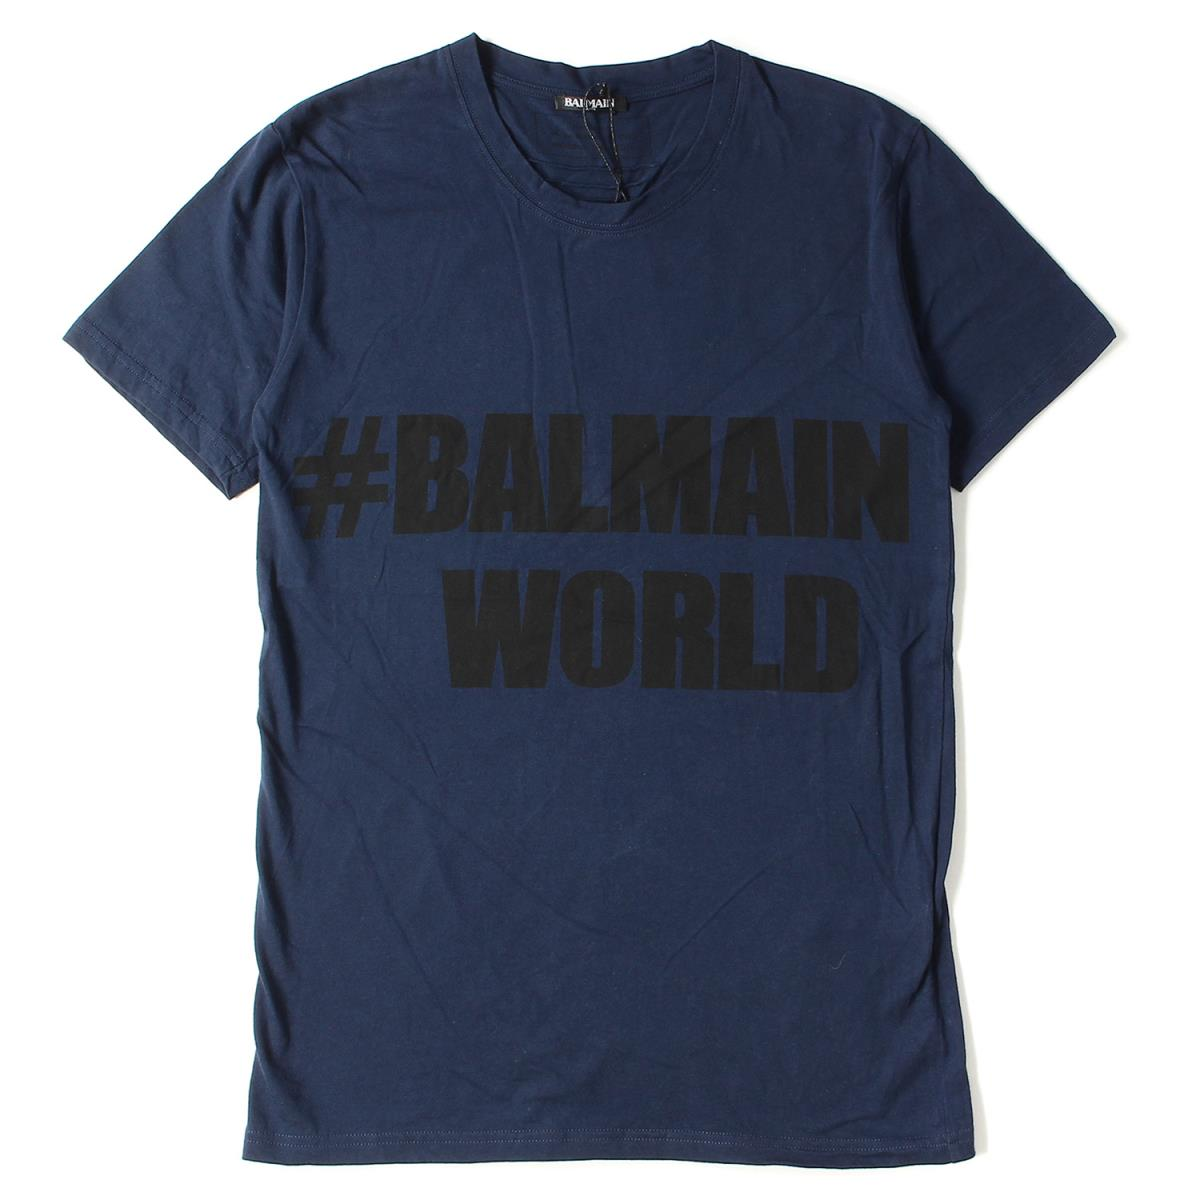 8f231ec4 BALMAIN HOMME (バルマンオム) 16A/W #BALMAIN WORLD print cotton T-shirt ...